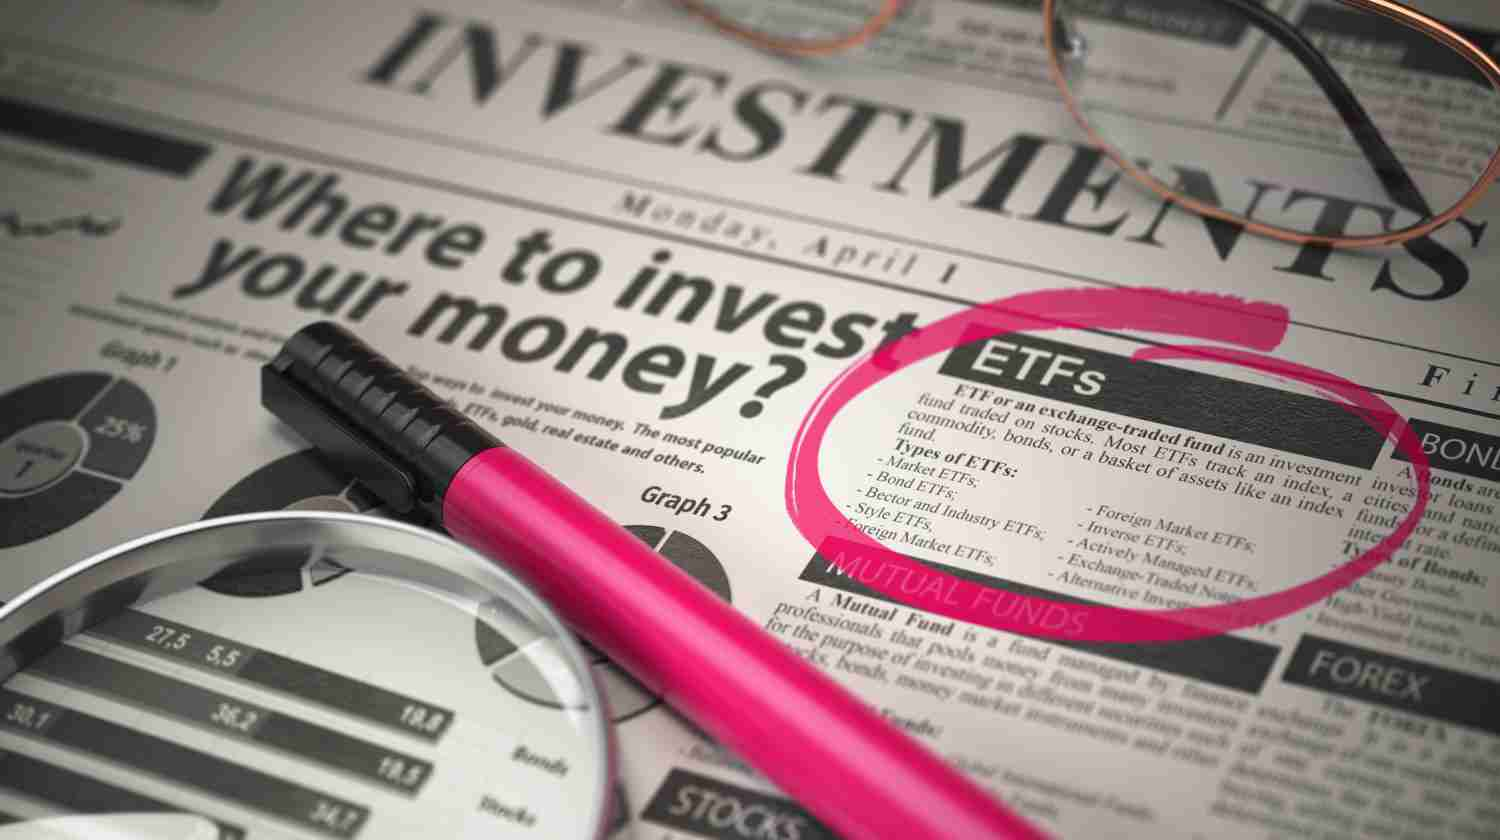 Feature   etf best option investment   Investing In Exchange-Traded Funds (ETFs)   Inside Your Roth IRA   etf guide